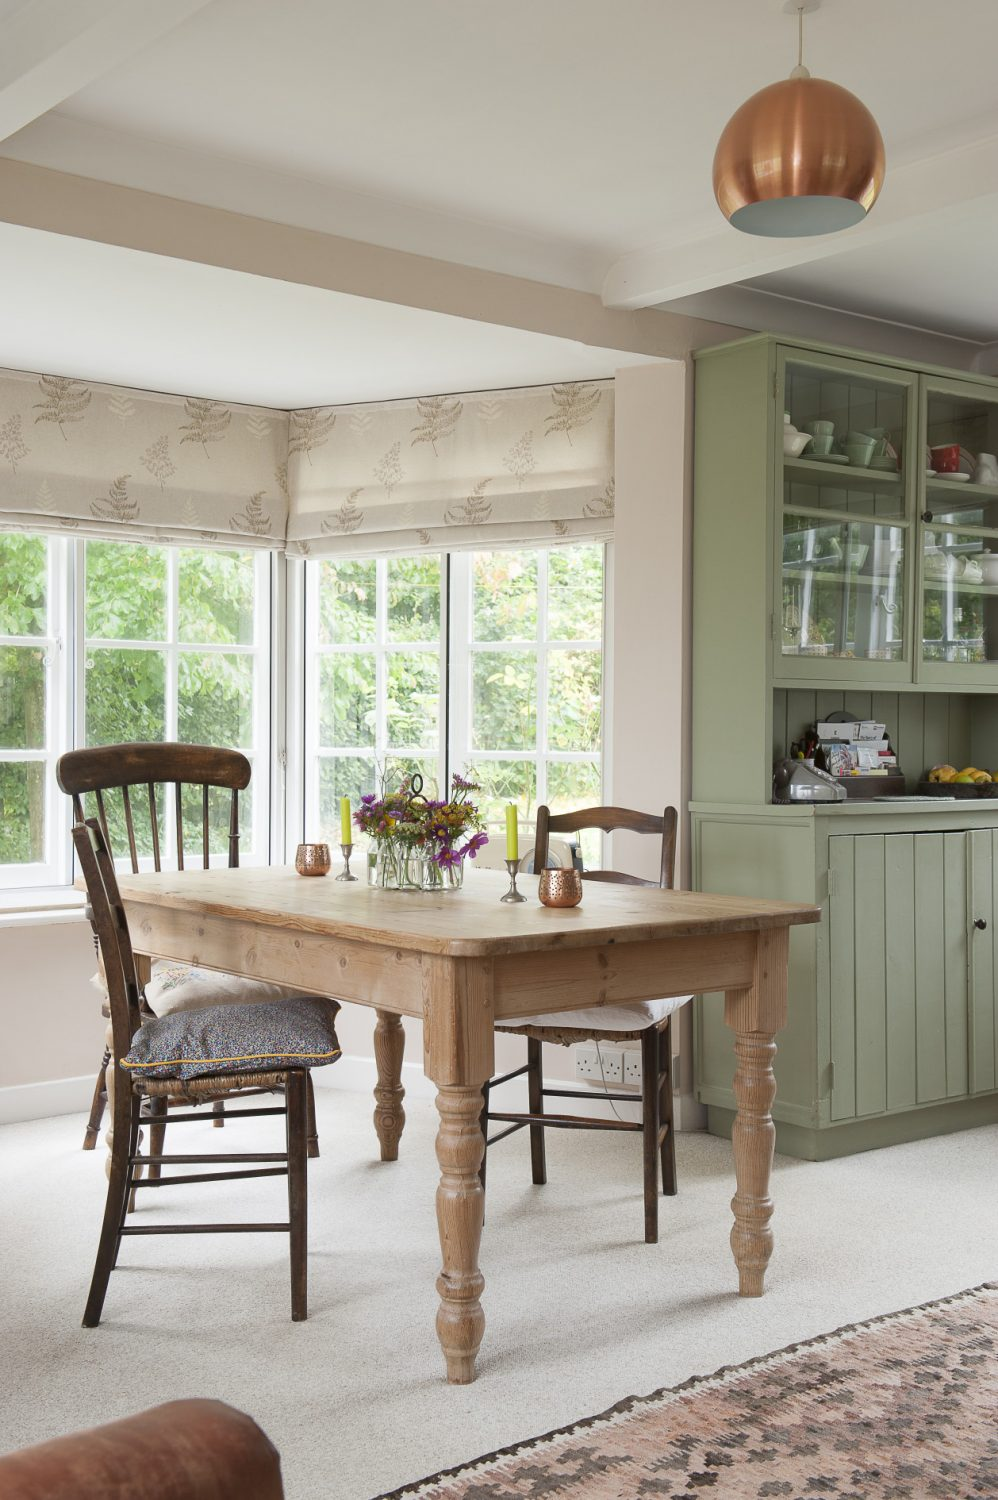 Mismatched chairs complement the informality of the rustic table